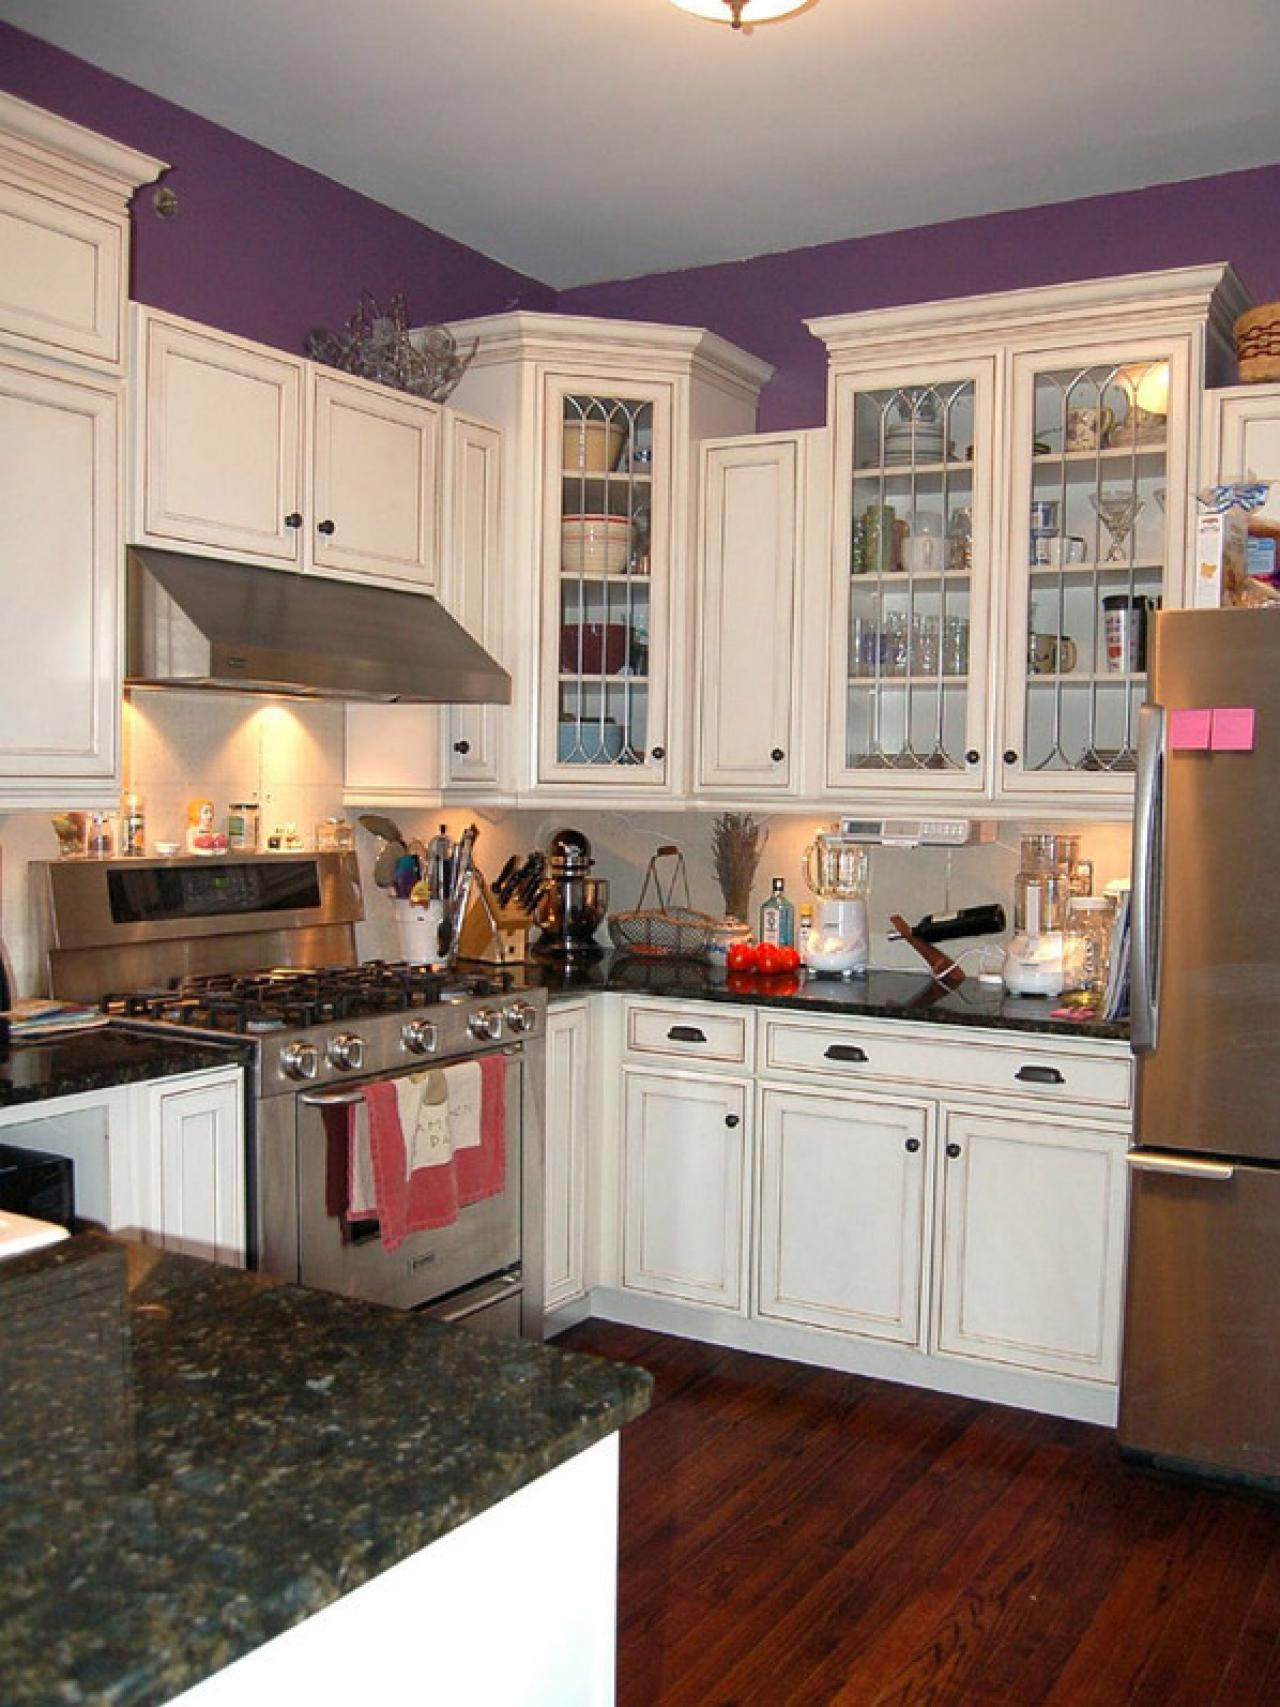 Small kitchen layouts pictures ideas tips from hgtv hgtv Small kitchen design pictures ideas